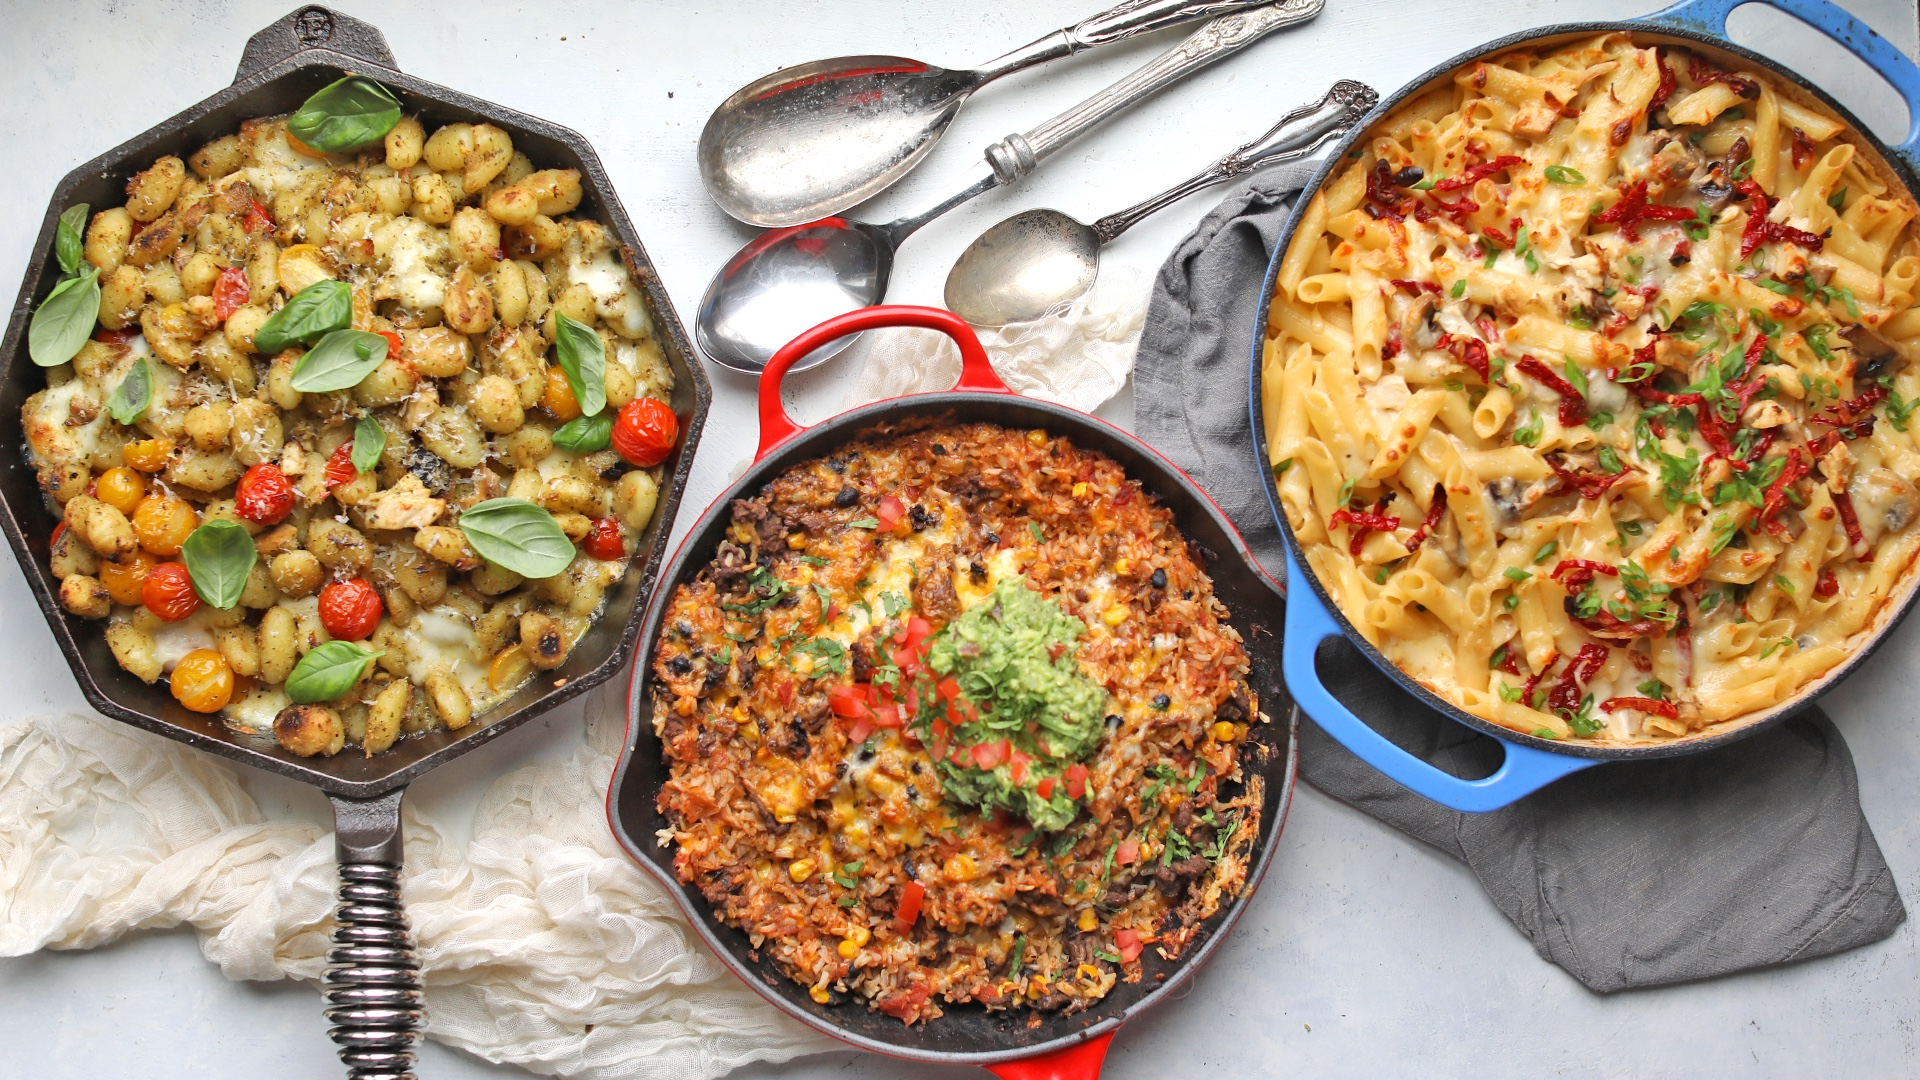 Three Easy One Pan Dinner Recipes For Busy Nights Billy Parisi